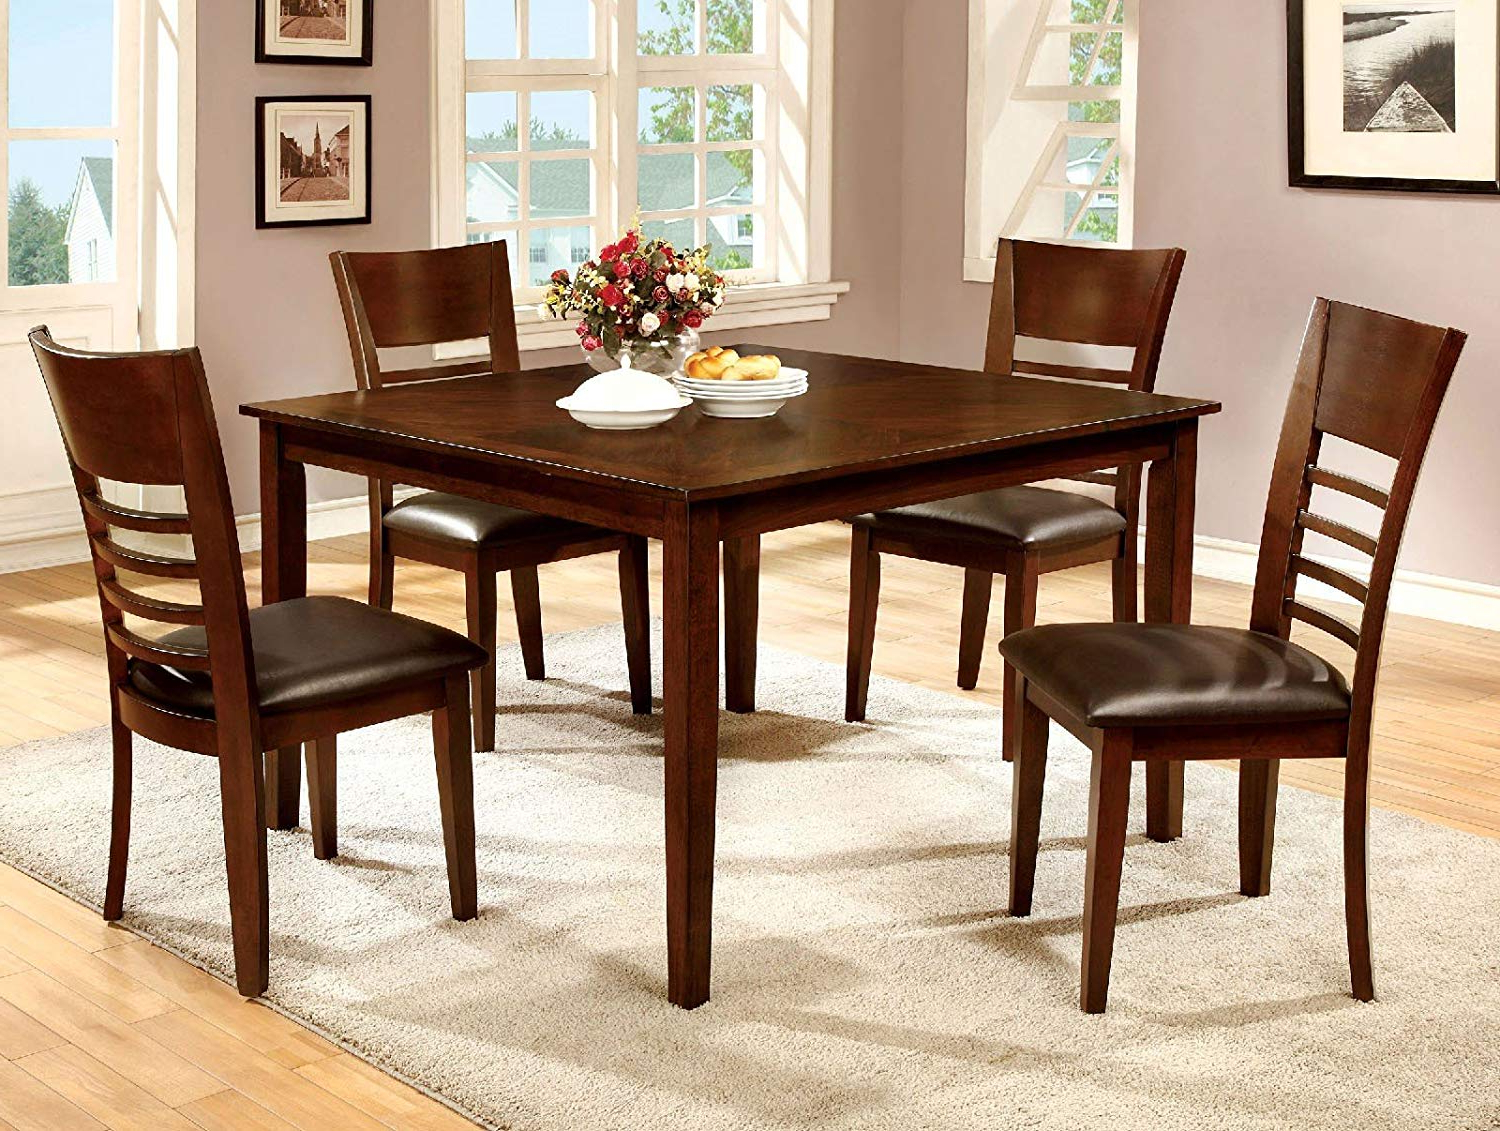 Amazon – 1Perfectchoice Simple Relax Hillsview 5Pc In Well Liked Transitional 4 Seating Square Casual Dining Tables (View 1 of 25)